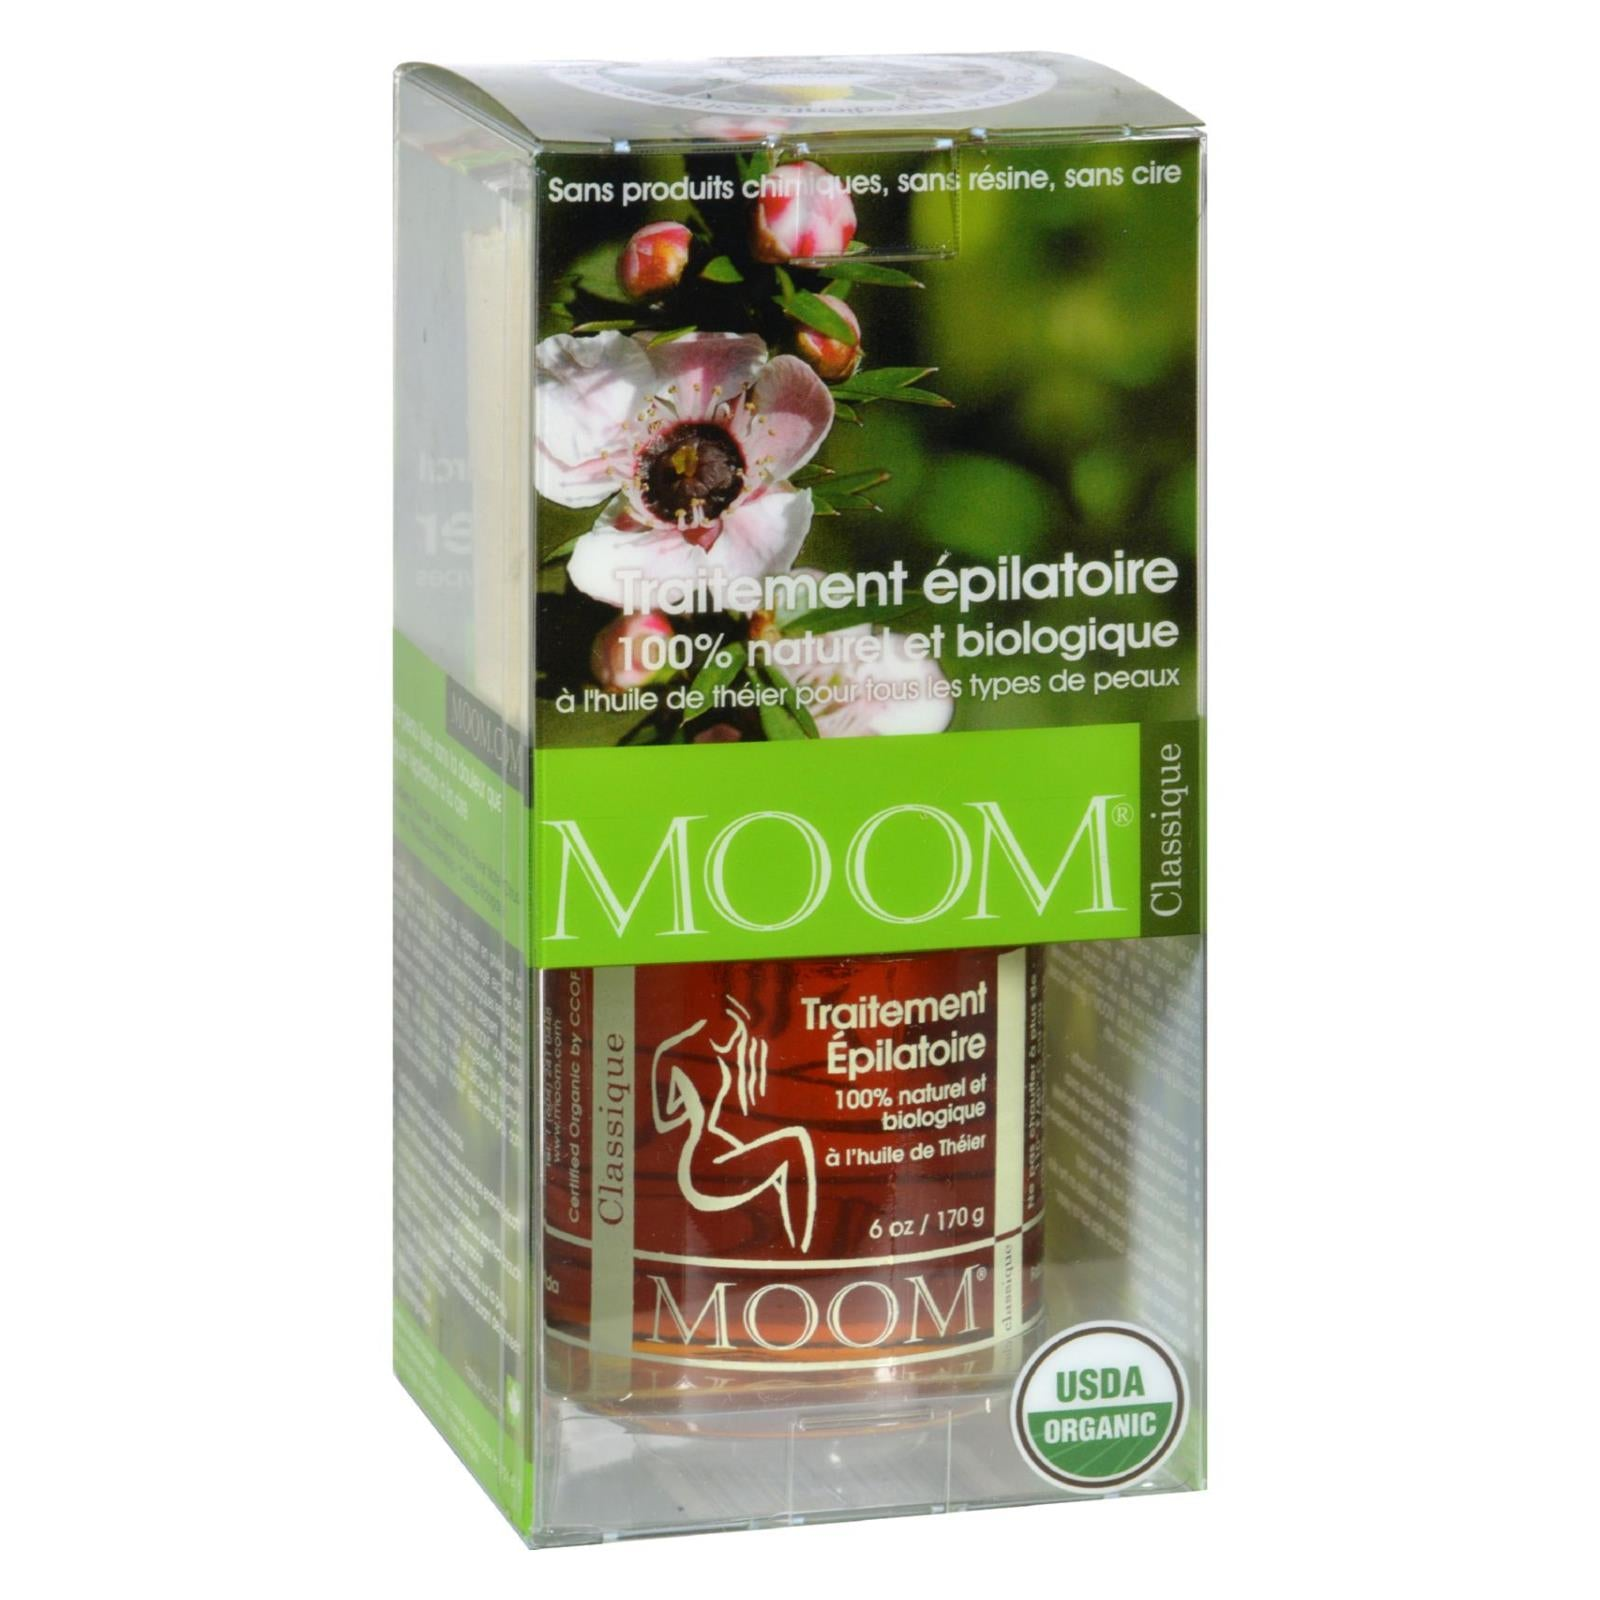 Moom Organic Hair Removal Kit With Tea Tree Classic - 1 Kit HG0167031